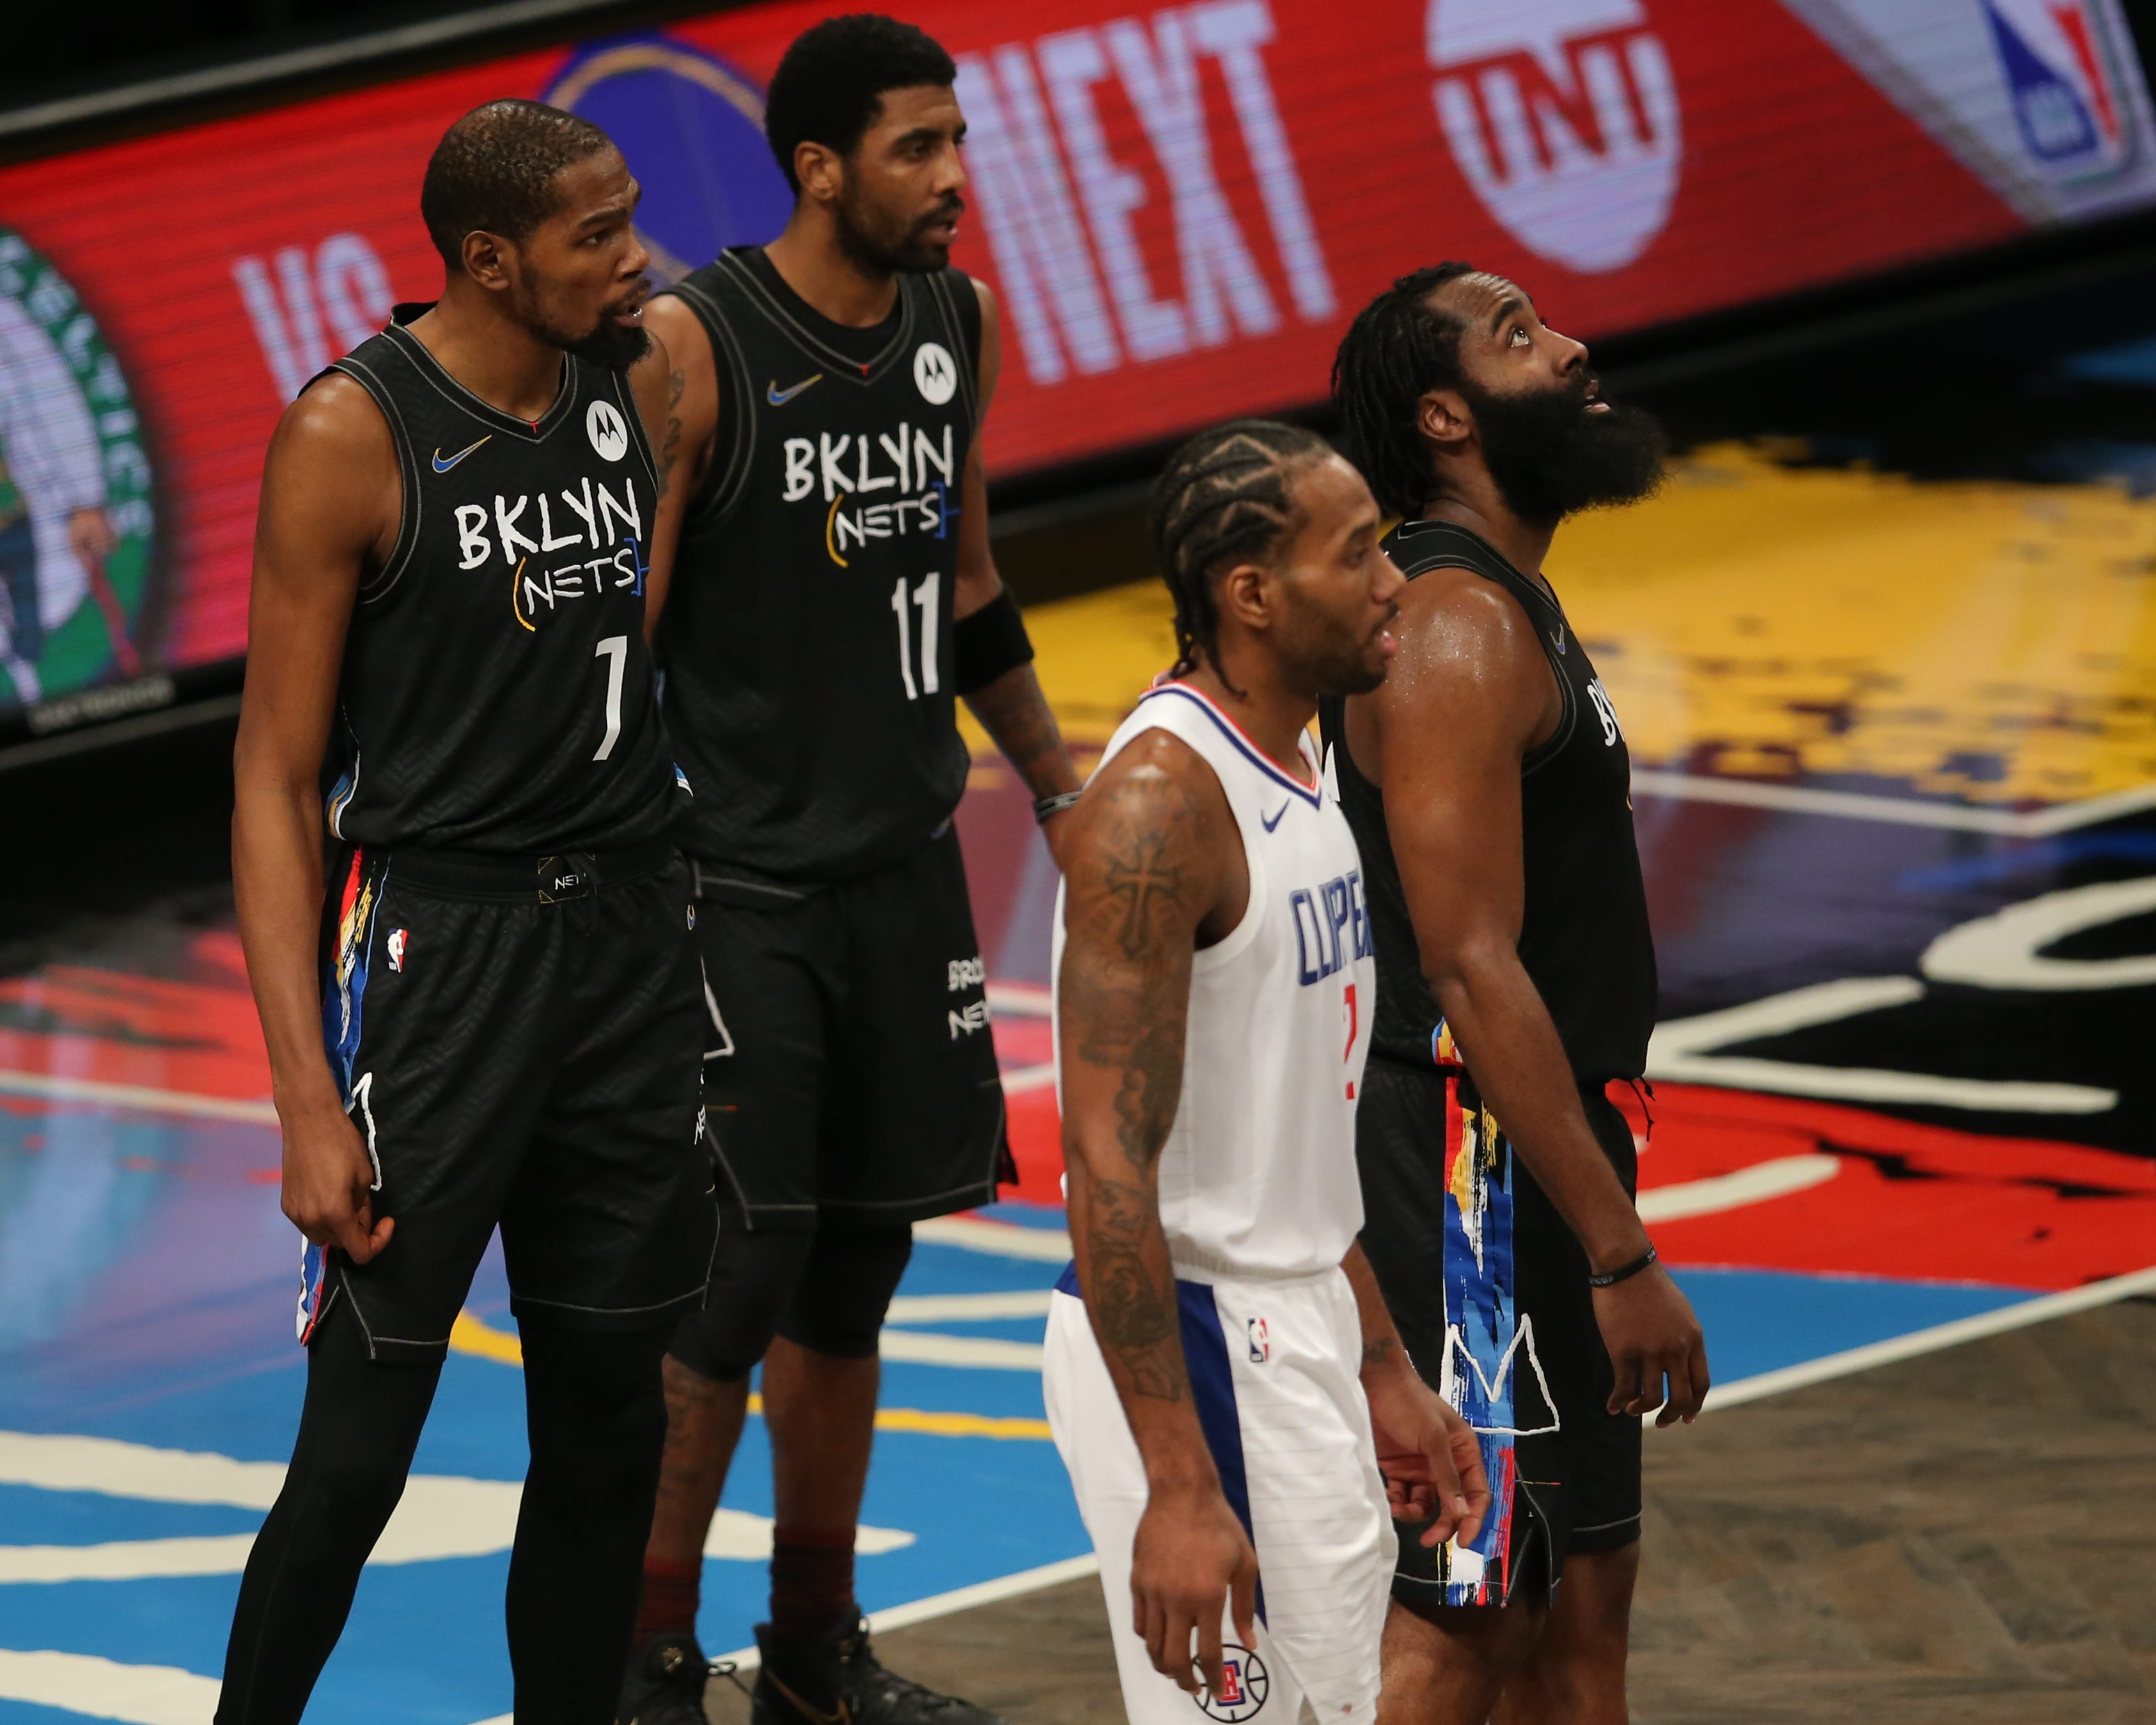 Opinion: Kevin Durant, Kyrie Irving and James Harden scoring outbursts not enough for Nets to win title